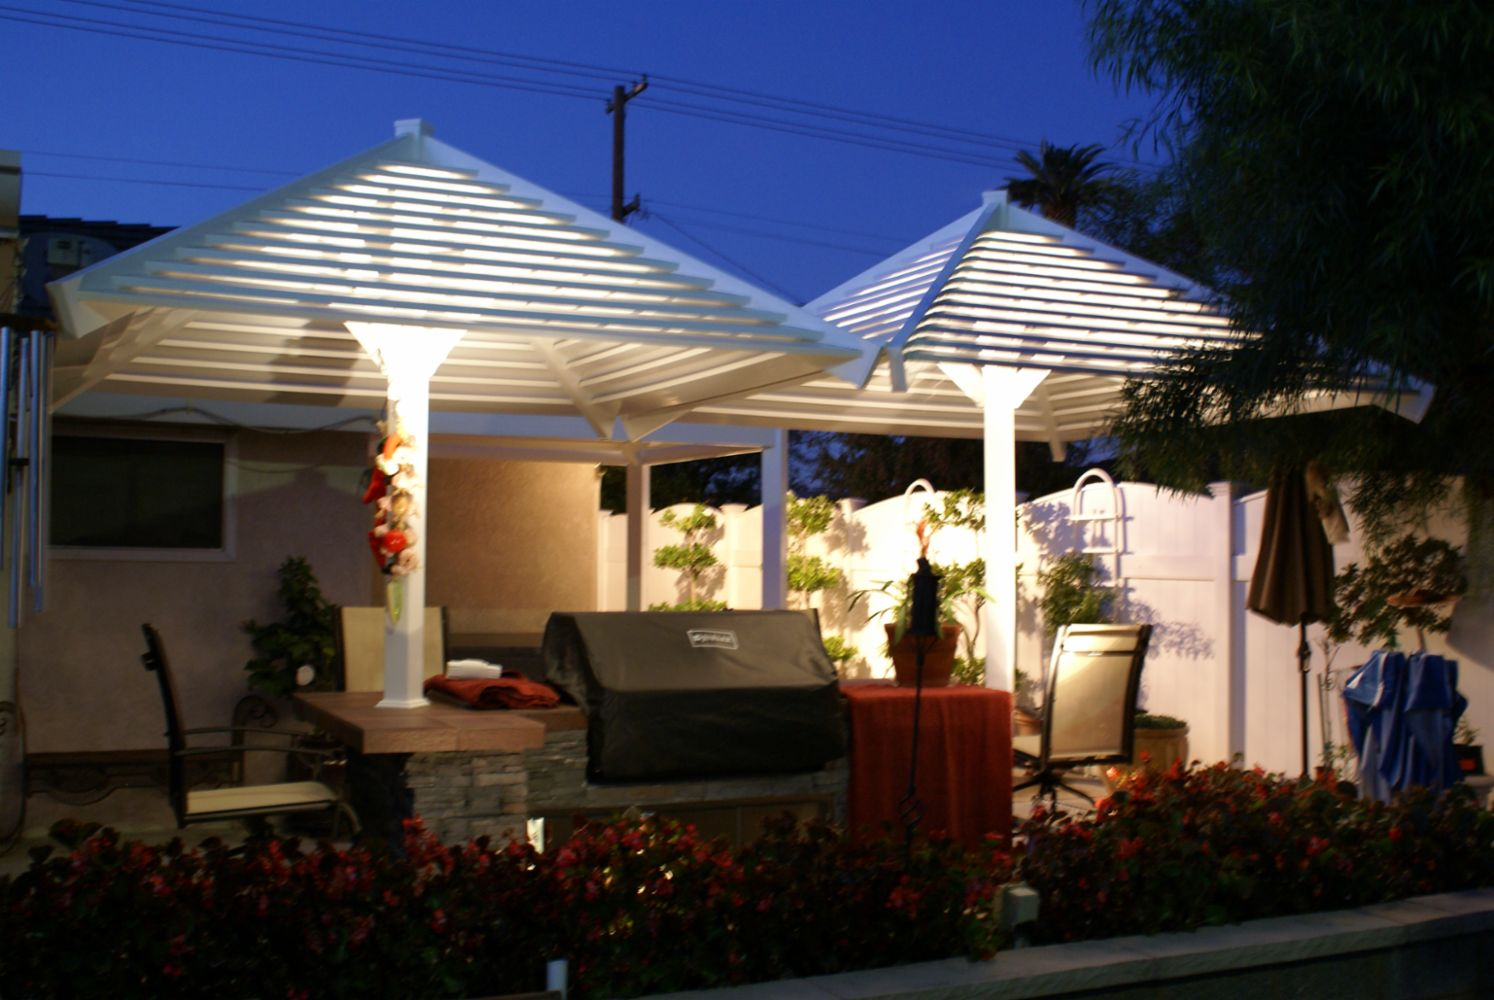 Fencing And Patio Covers In Modesto Ca Titan Fence